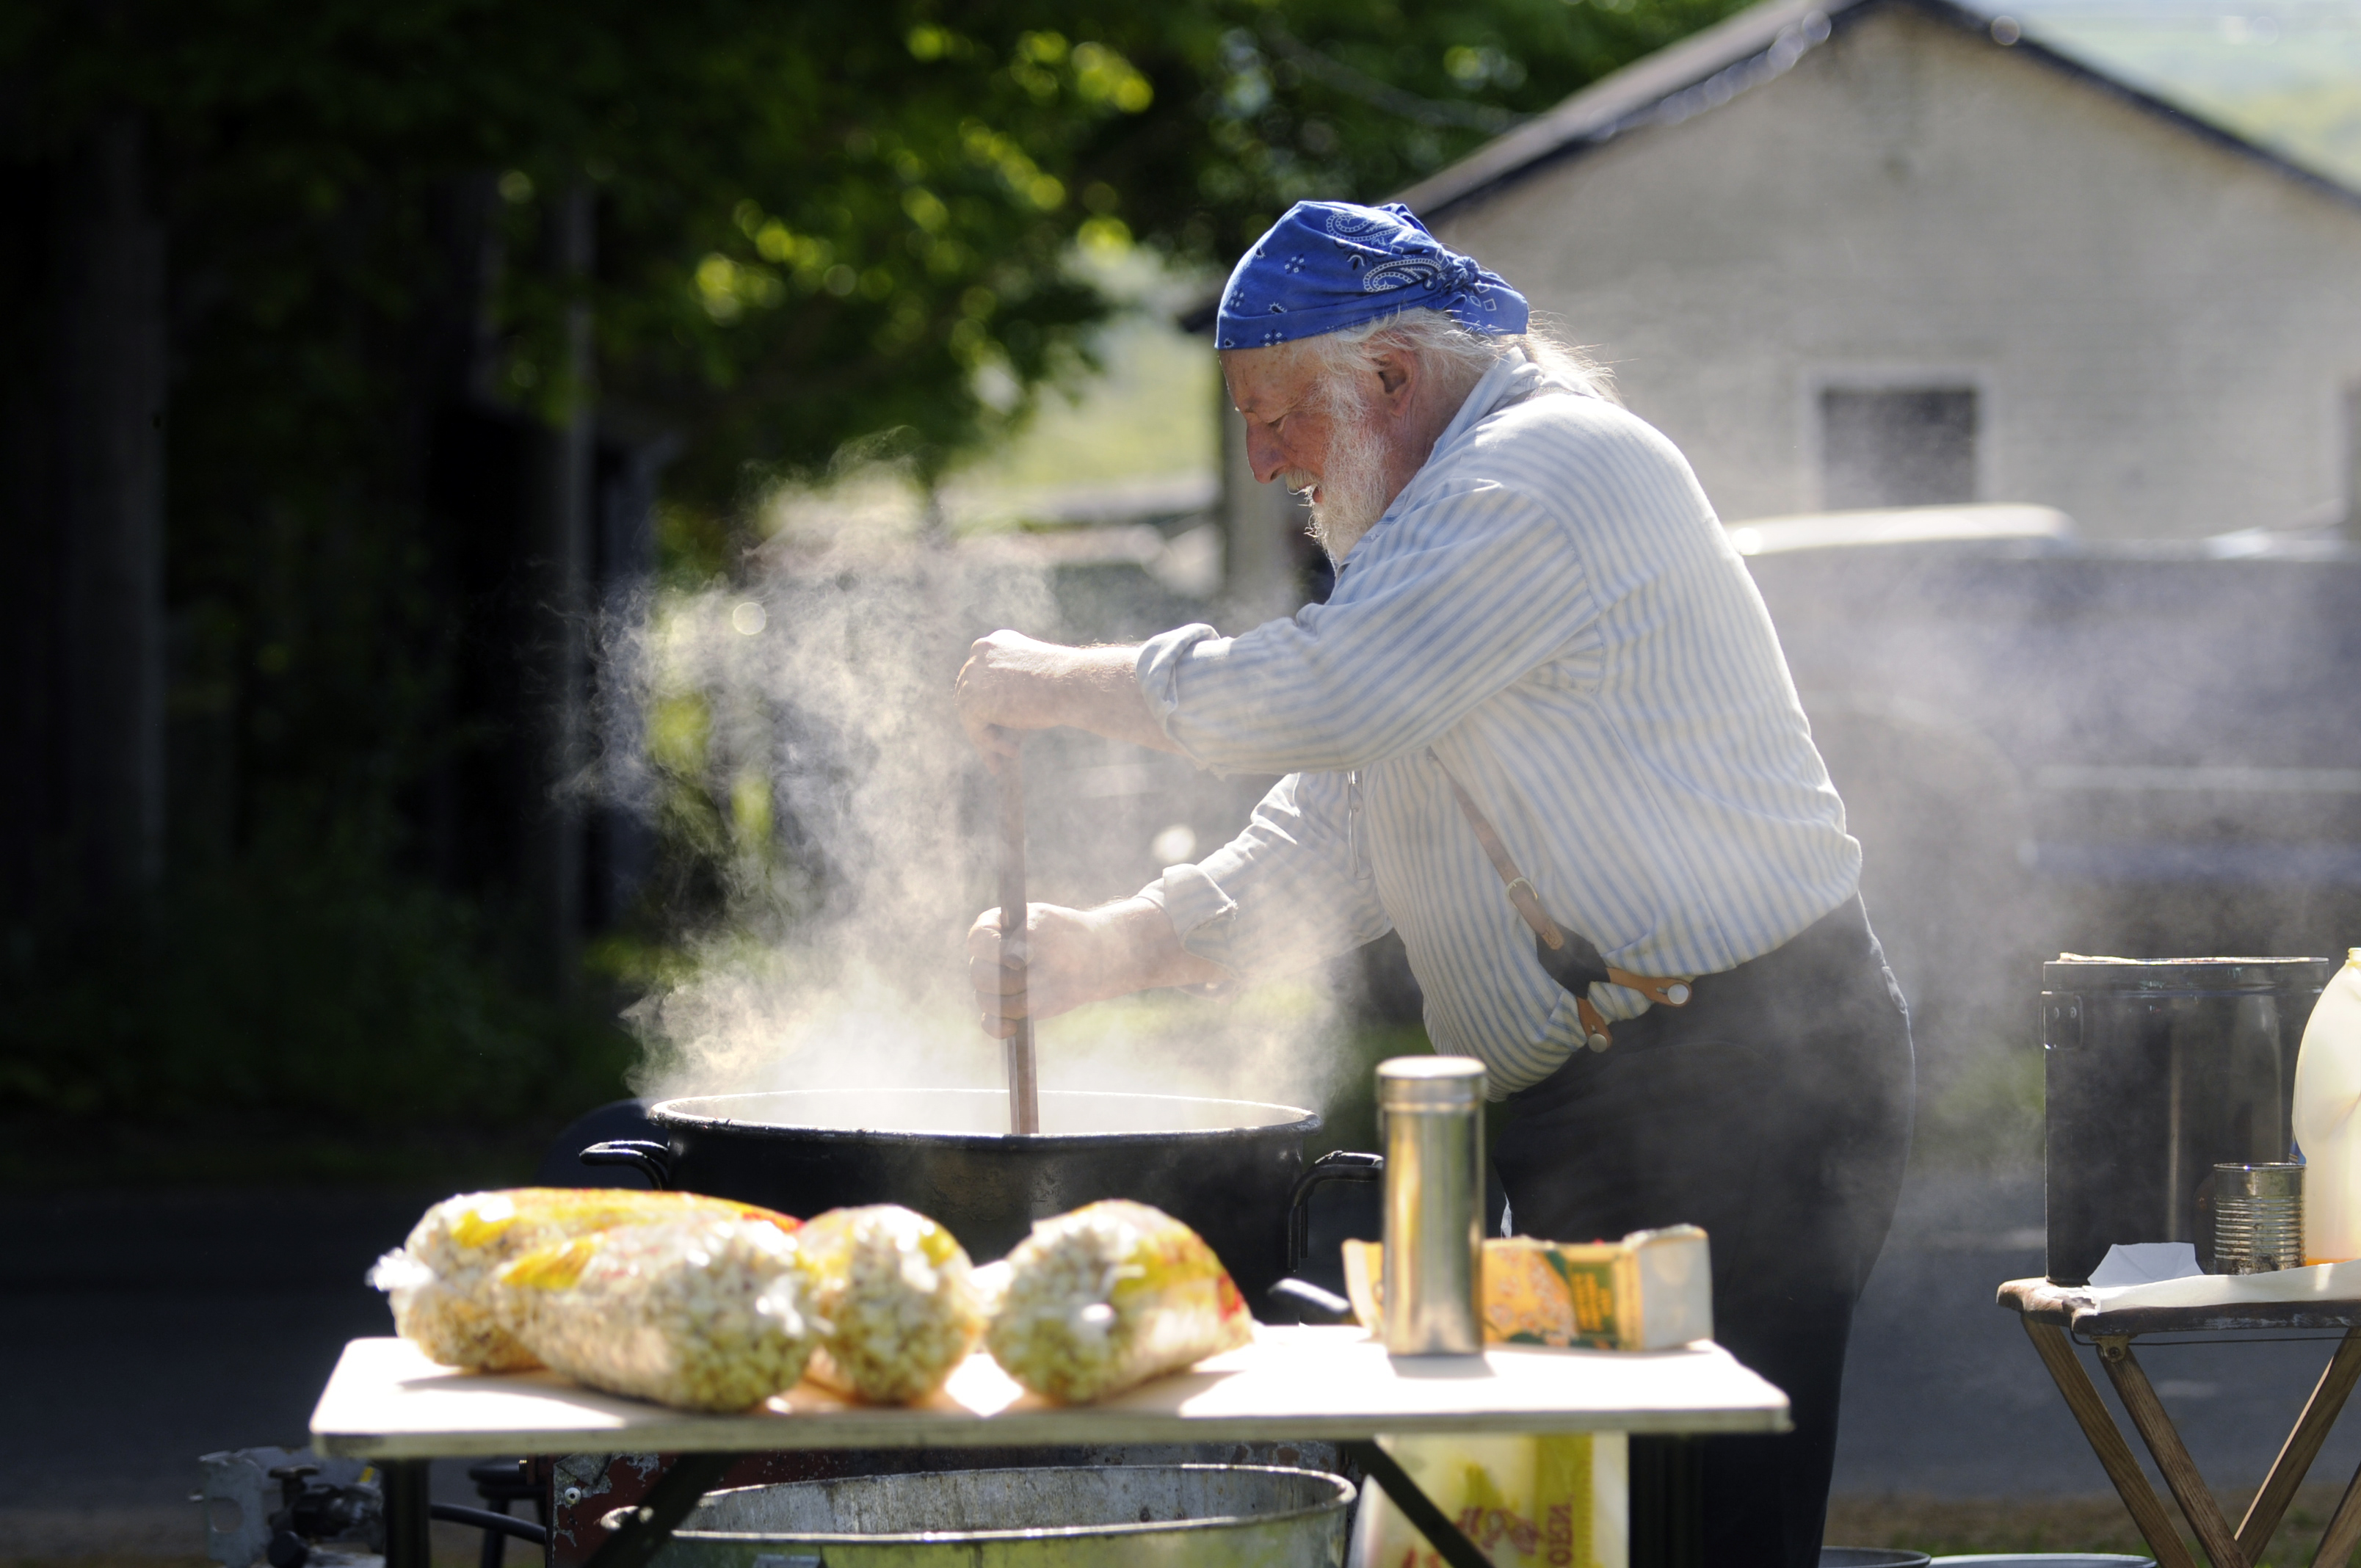 2013.05.16 - Durham, CT - Al Kostuk, of Durham, stirs a batch of kettle corn at the Durham Farmer's Market on the town green  Thursday.  Kostuk, a retired mechanic, is the proprietor of Pisgah Mountain Primitives and gives early American living history demonstrations, including open fire cooking and blacksmithing.  He cooks and sells the kettle corn at the market every Thursday afternoon.